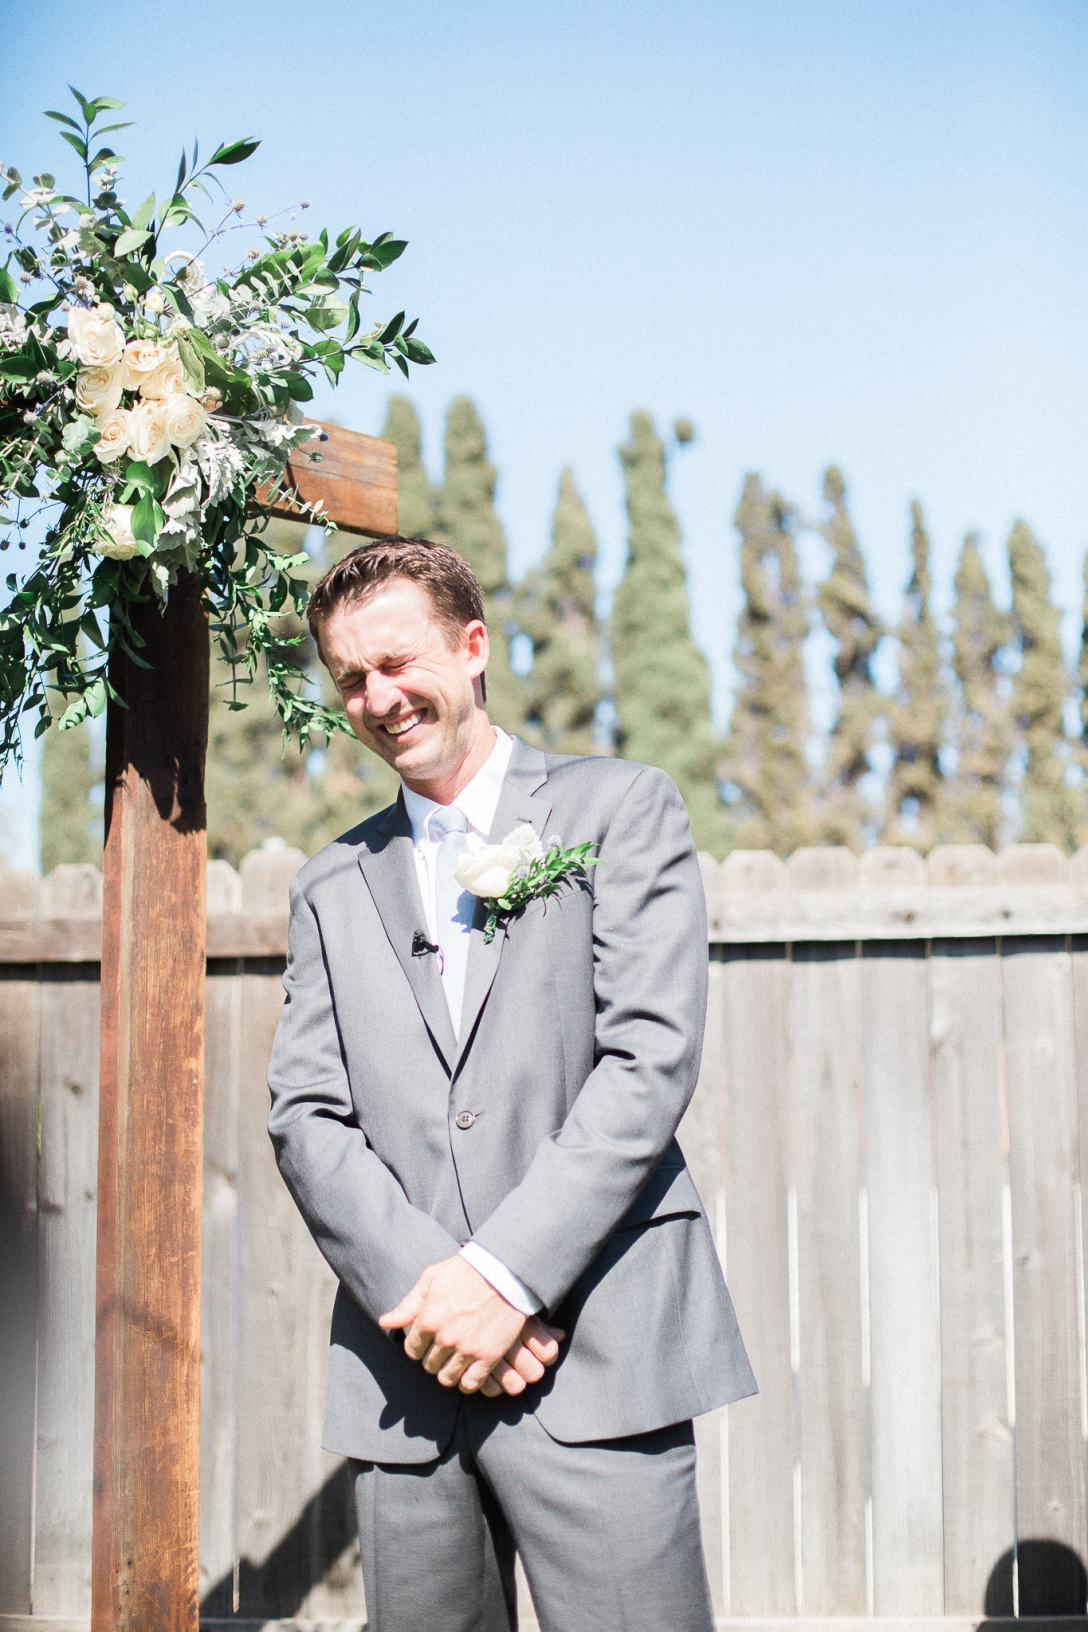 Katy-Steve-Wedding-Tustin-California-42